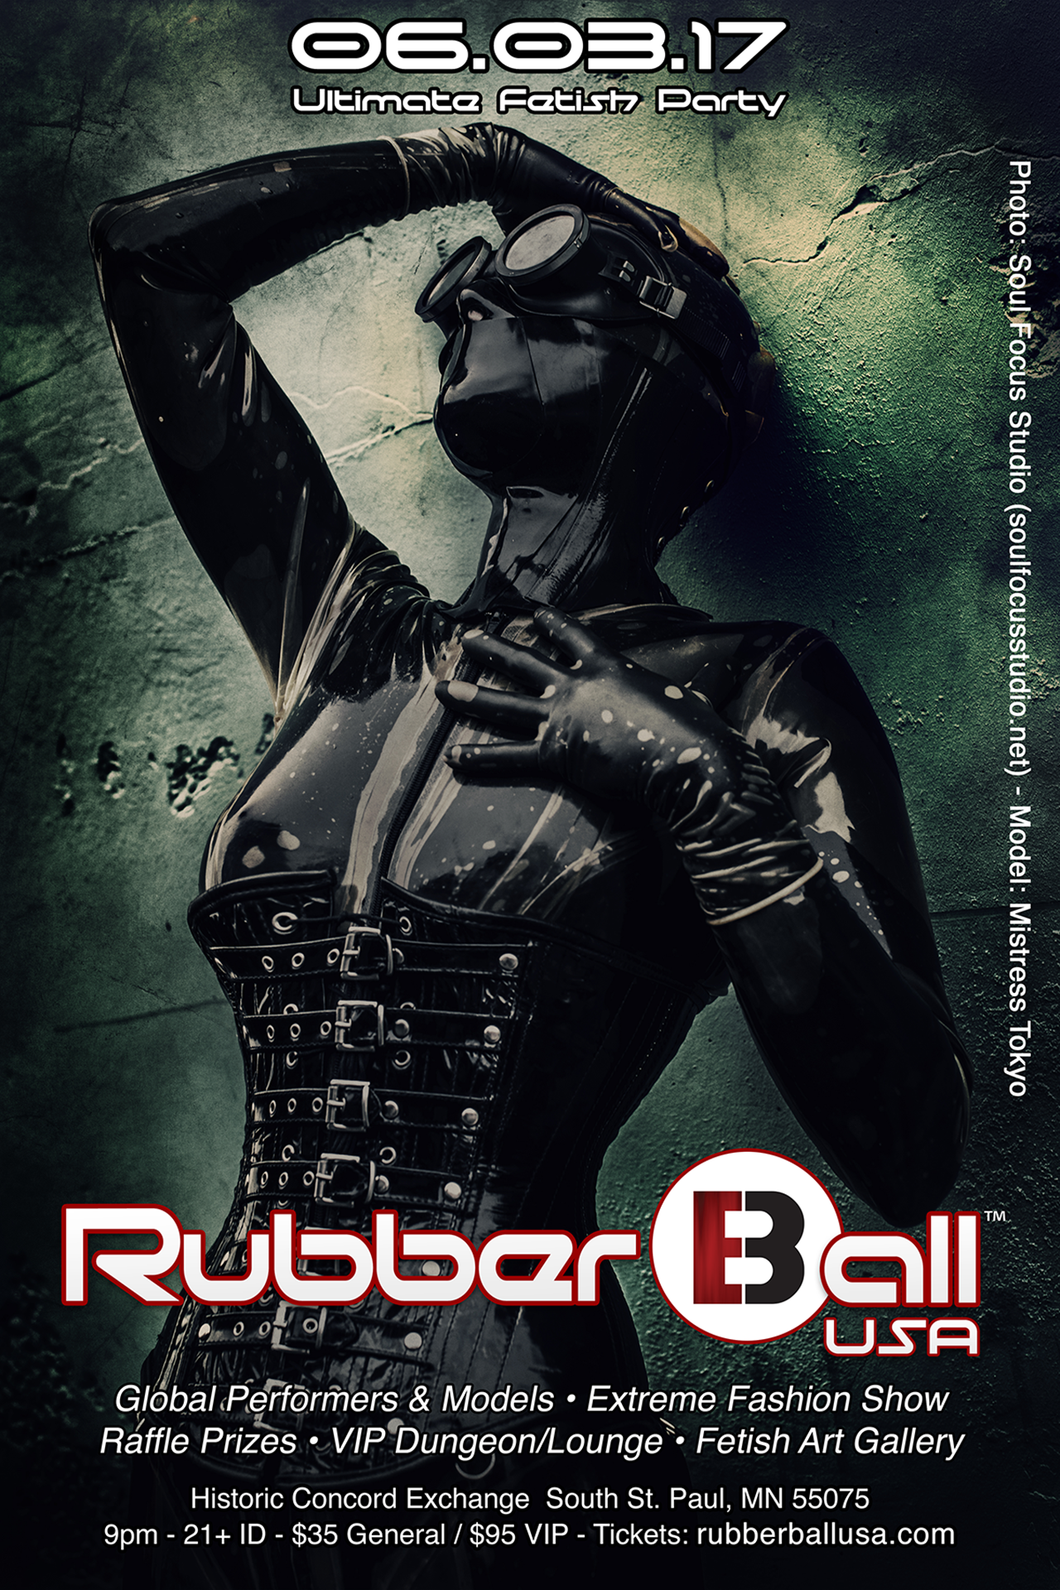 Rubber Ball USA 06.03.17